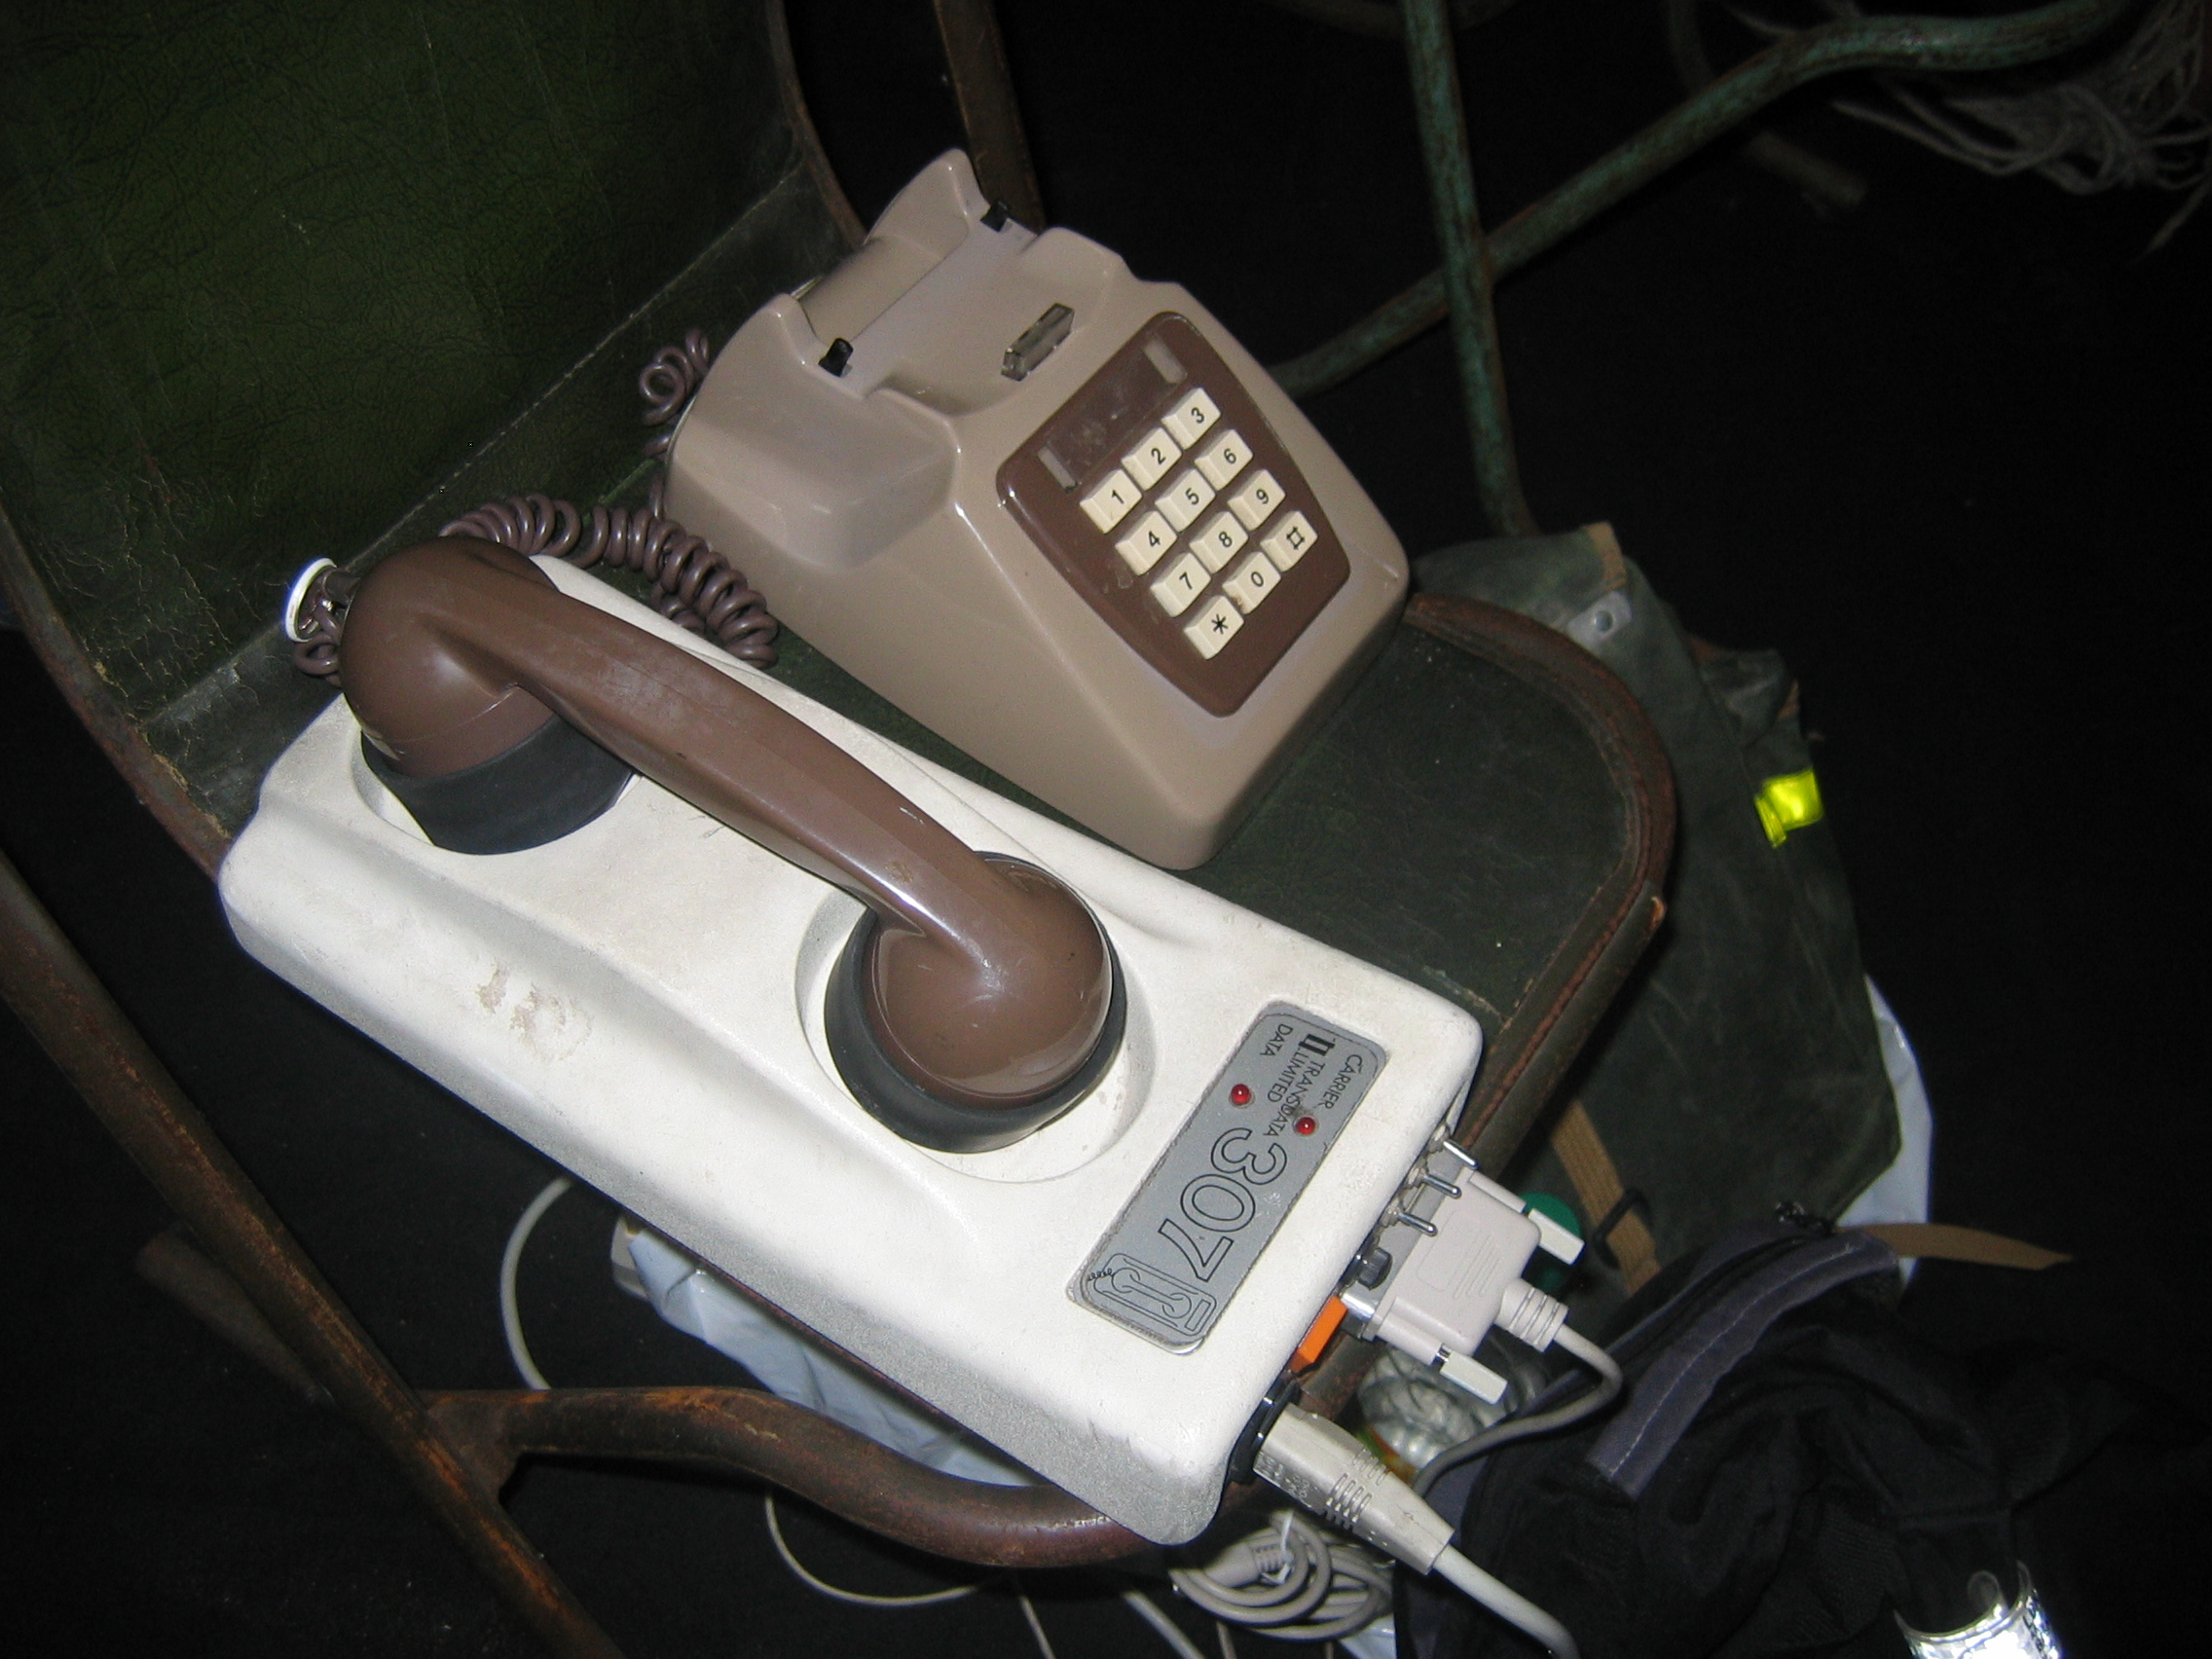 Can you believe we used to connect to the Internet using a contraption like this...?